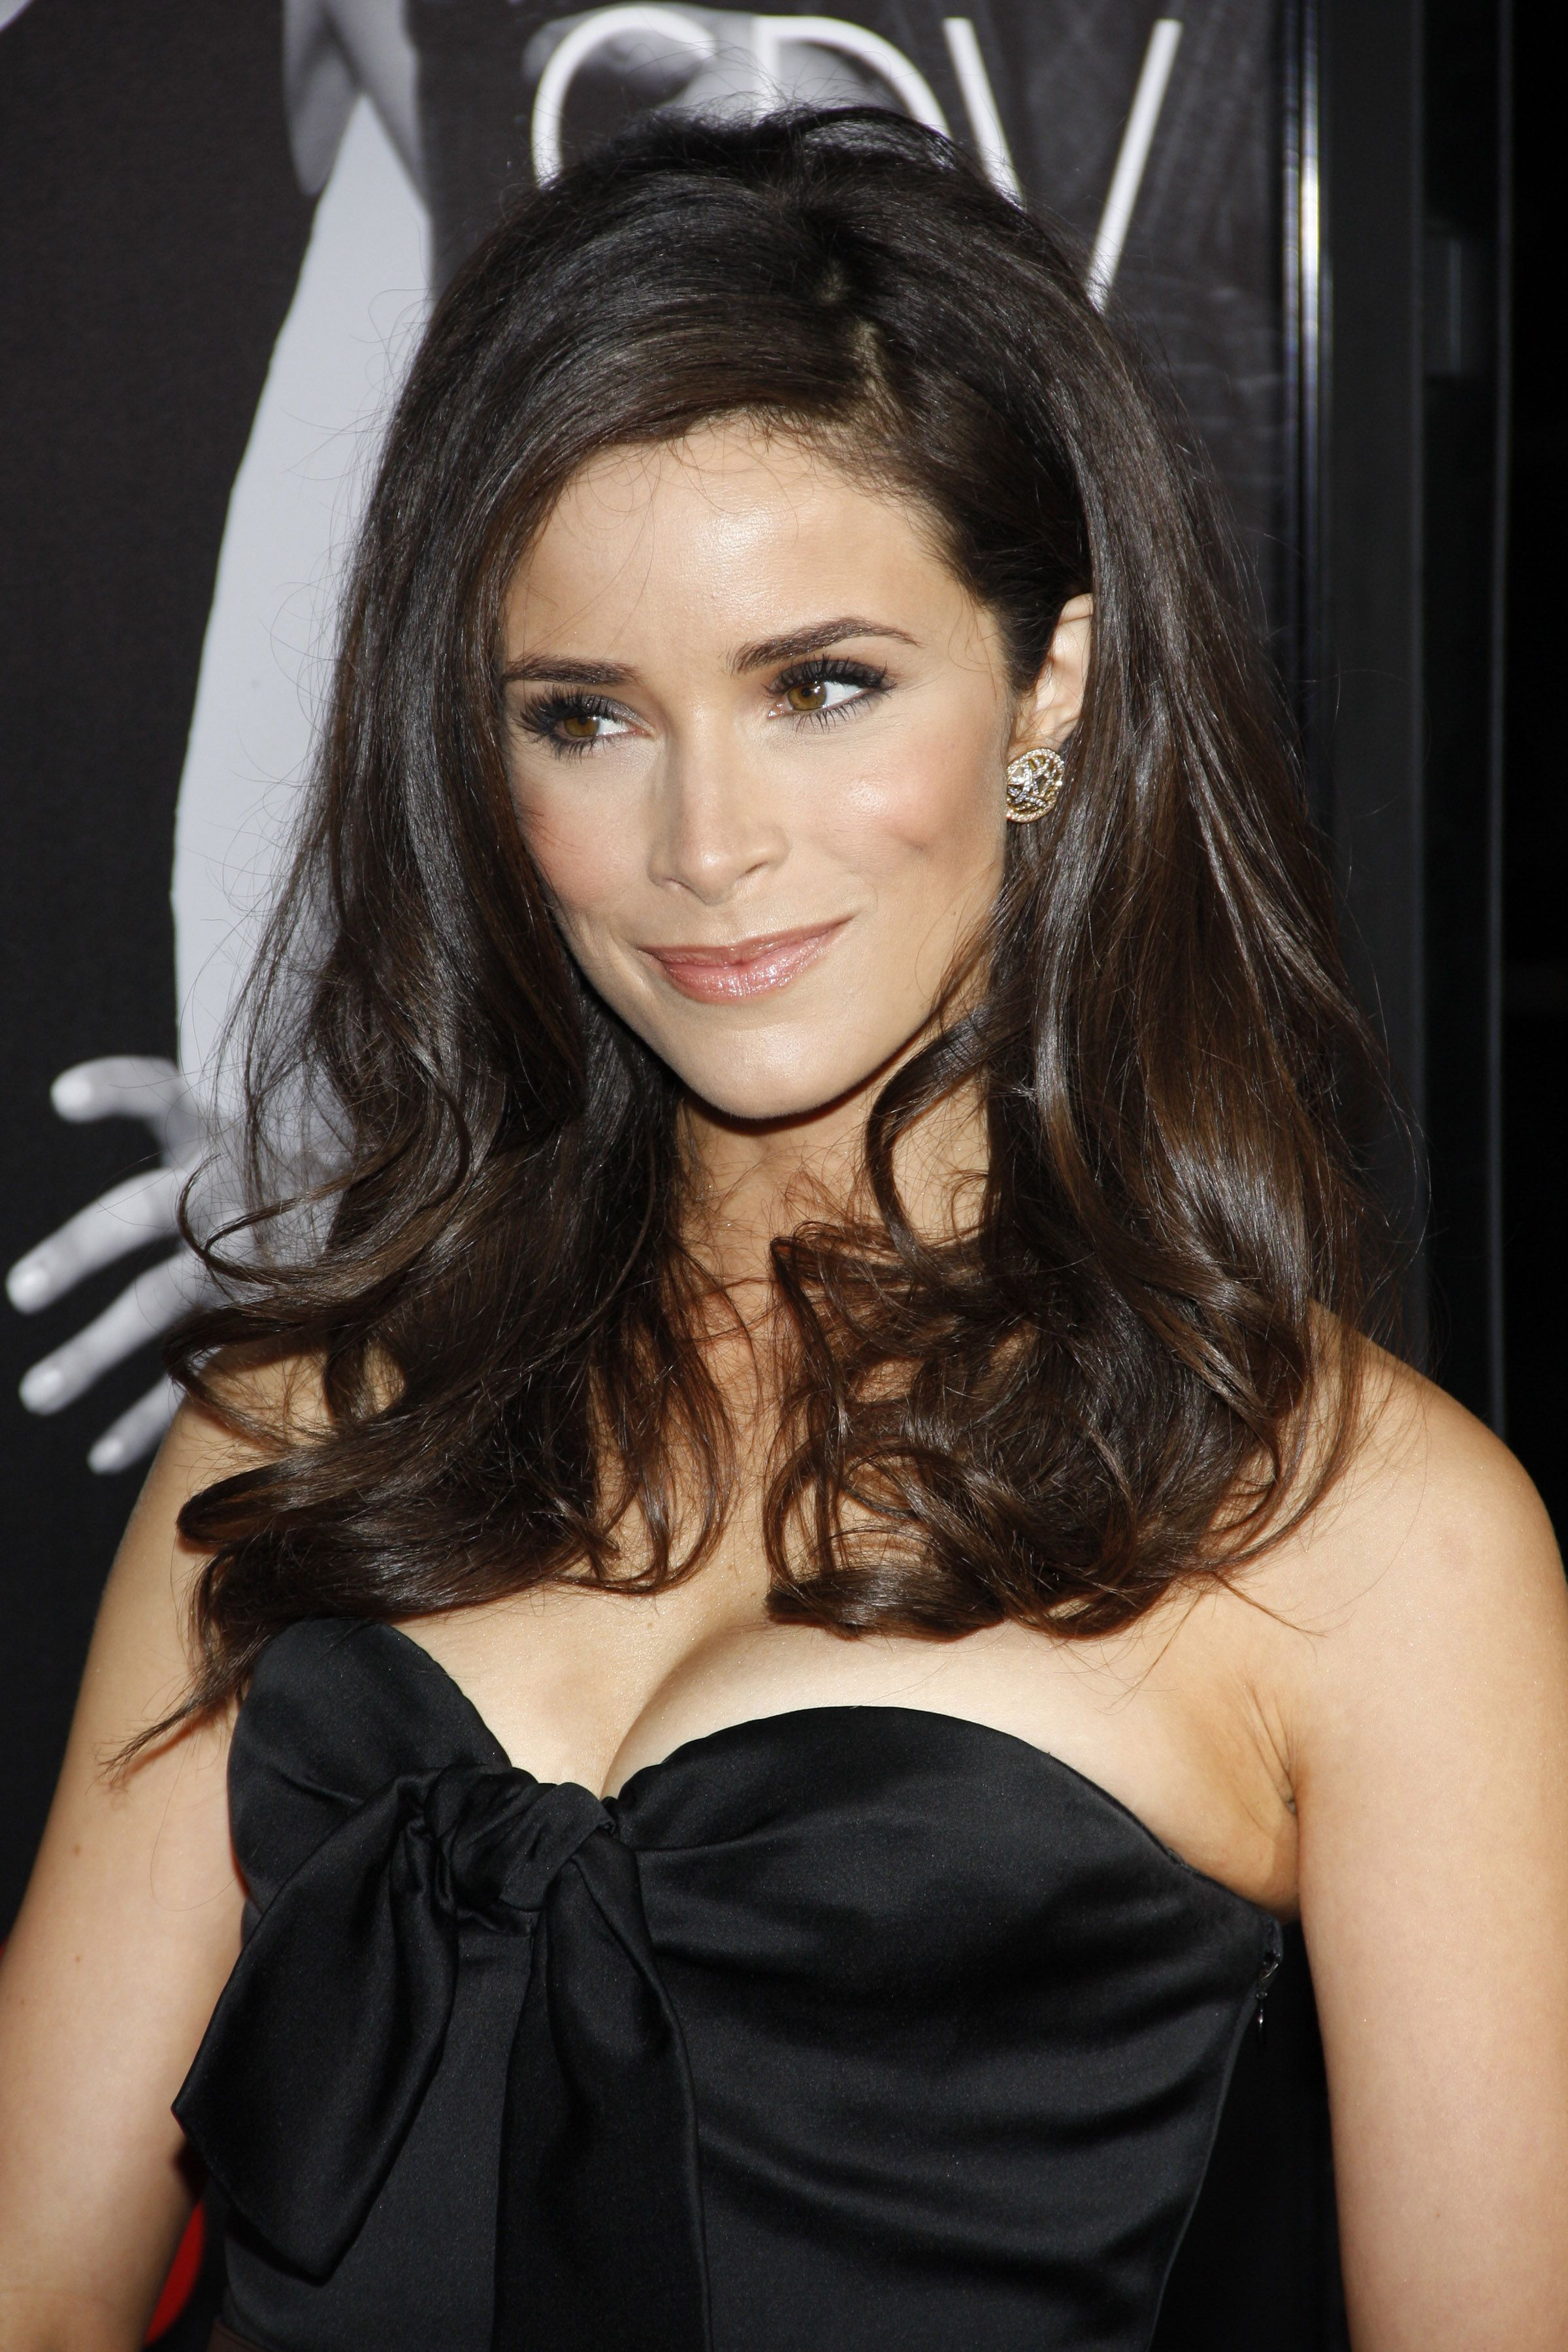 Cleavage Abigail Spencer nude (92 foto and video), Ass, Cleavage, Twitter, swimsuit 2015